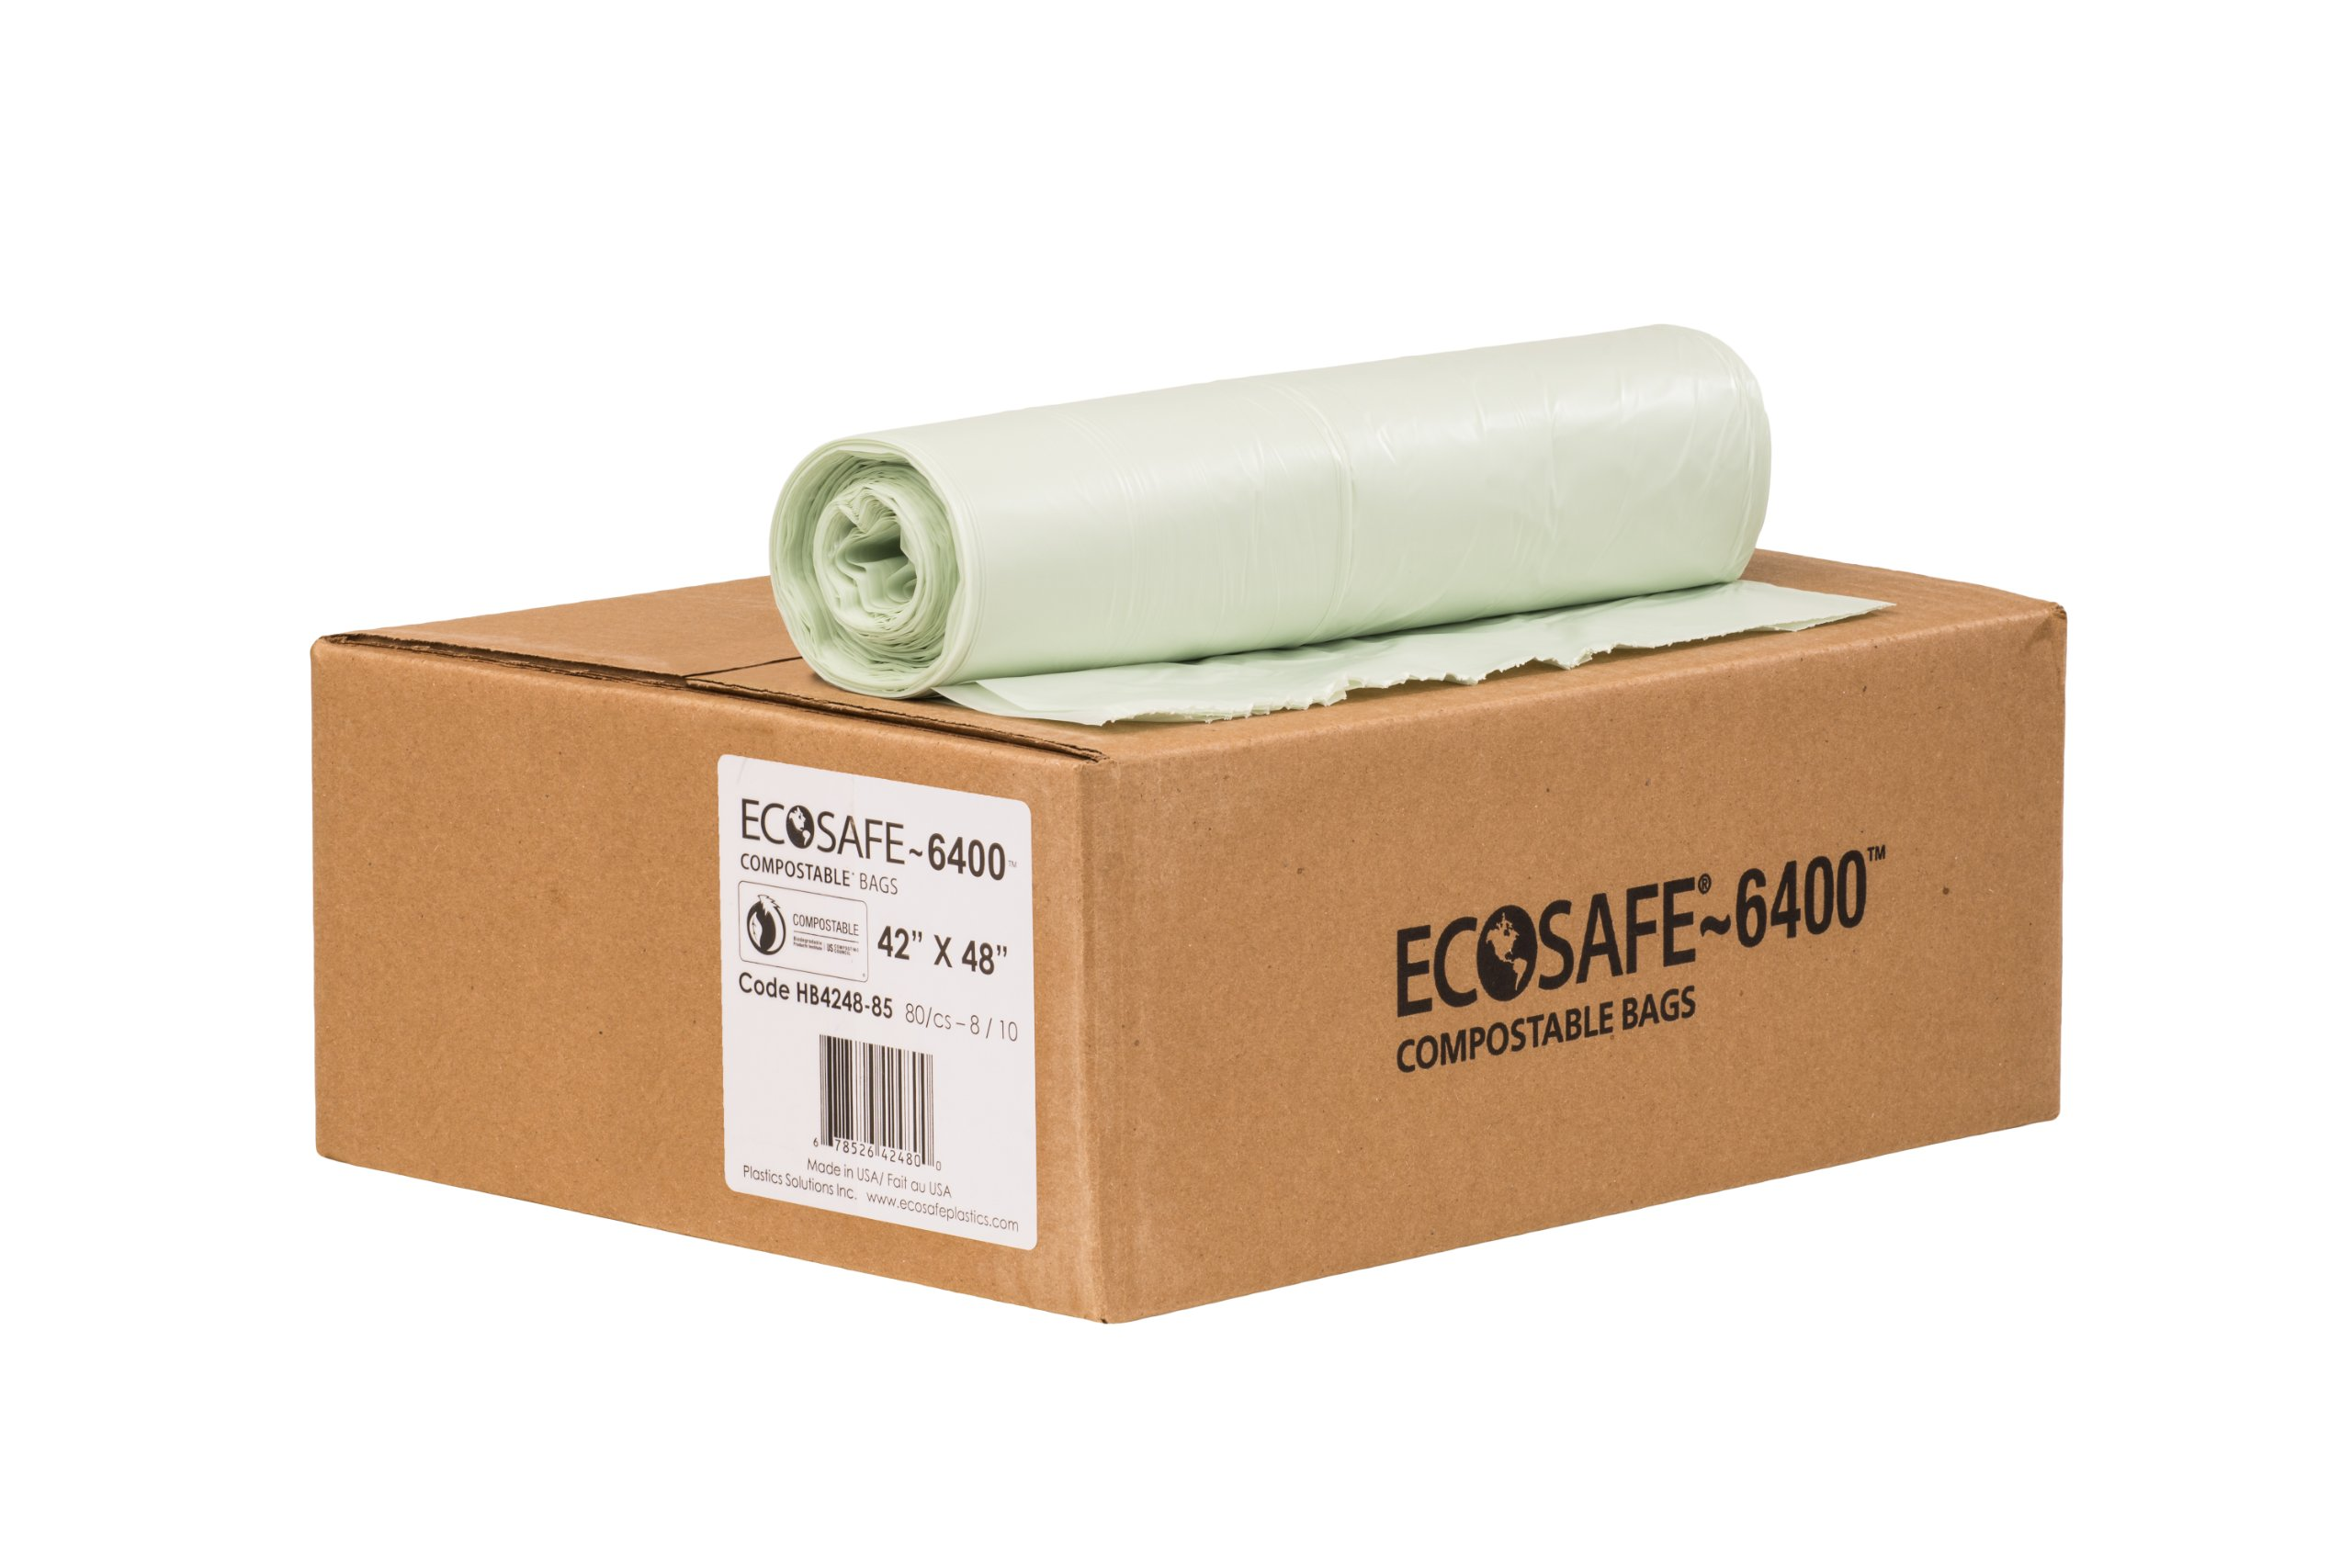 EcoSafe-6400 HB4248-85 Compostable Bag, Certified Compostable, 55-Gallon, Green (Pack of 80) by EcoSafe